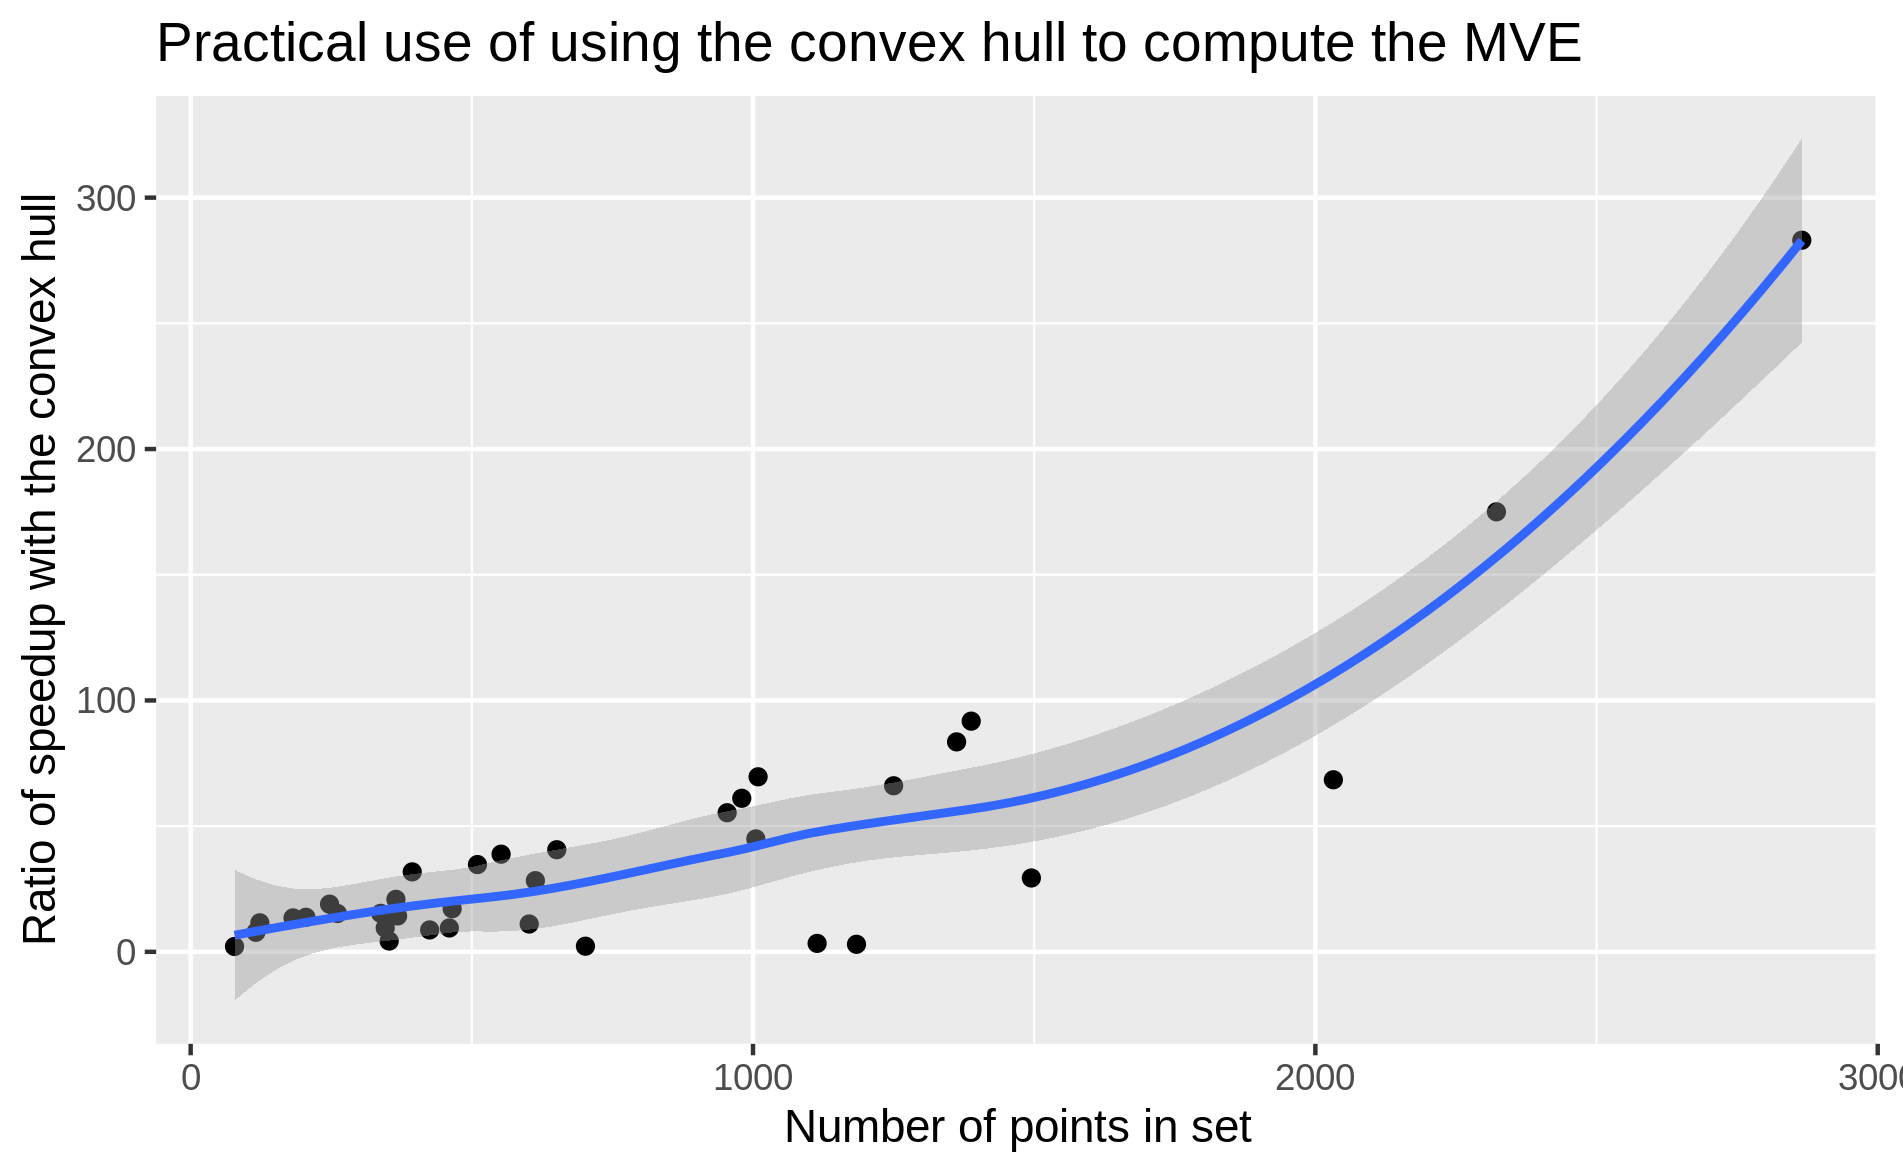 Speedup (initial time/convex hull time) achieved by using the convex hull to compute minimum volume bounding ellipsoids